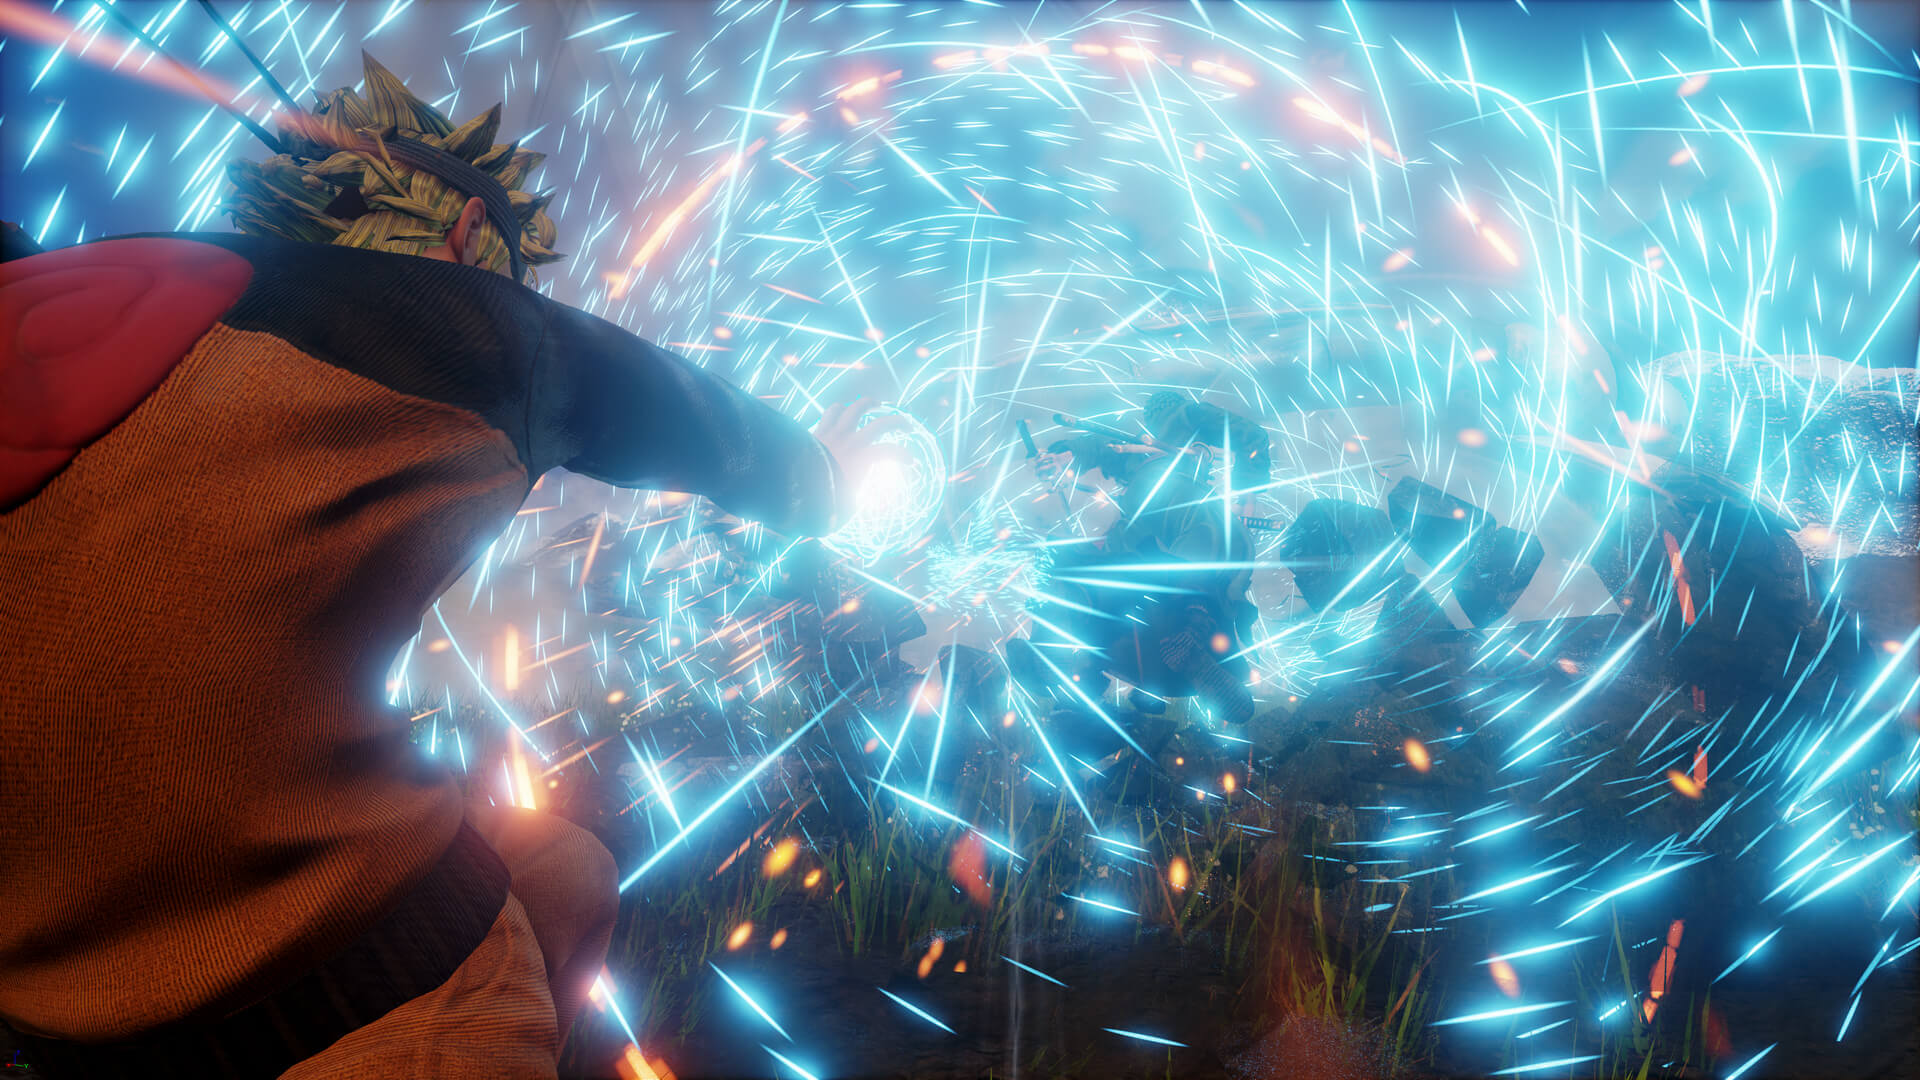 https://www.dsogaming.com/wp-content/uploads/2018/06/Jump_Force_Screenshots_2_1528675483.jpg